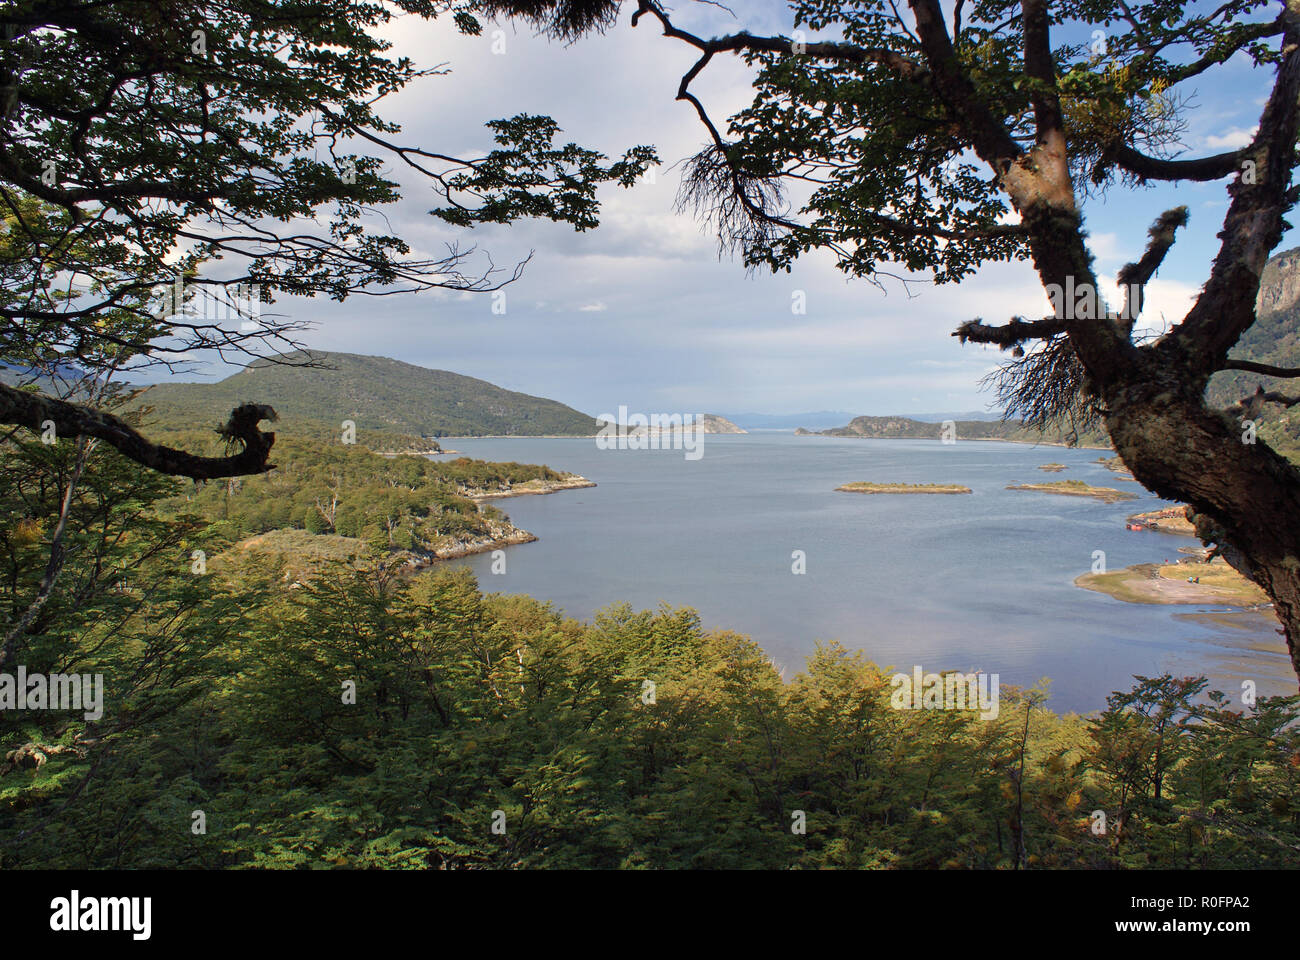 Tierra Del Fuego National Park, southernmost national park in Argentina and close to the world's southernmost city Ushuaia. Dramatic scenery - Stock Image